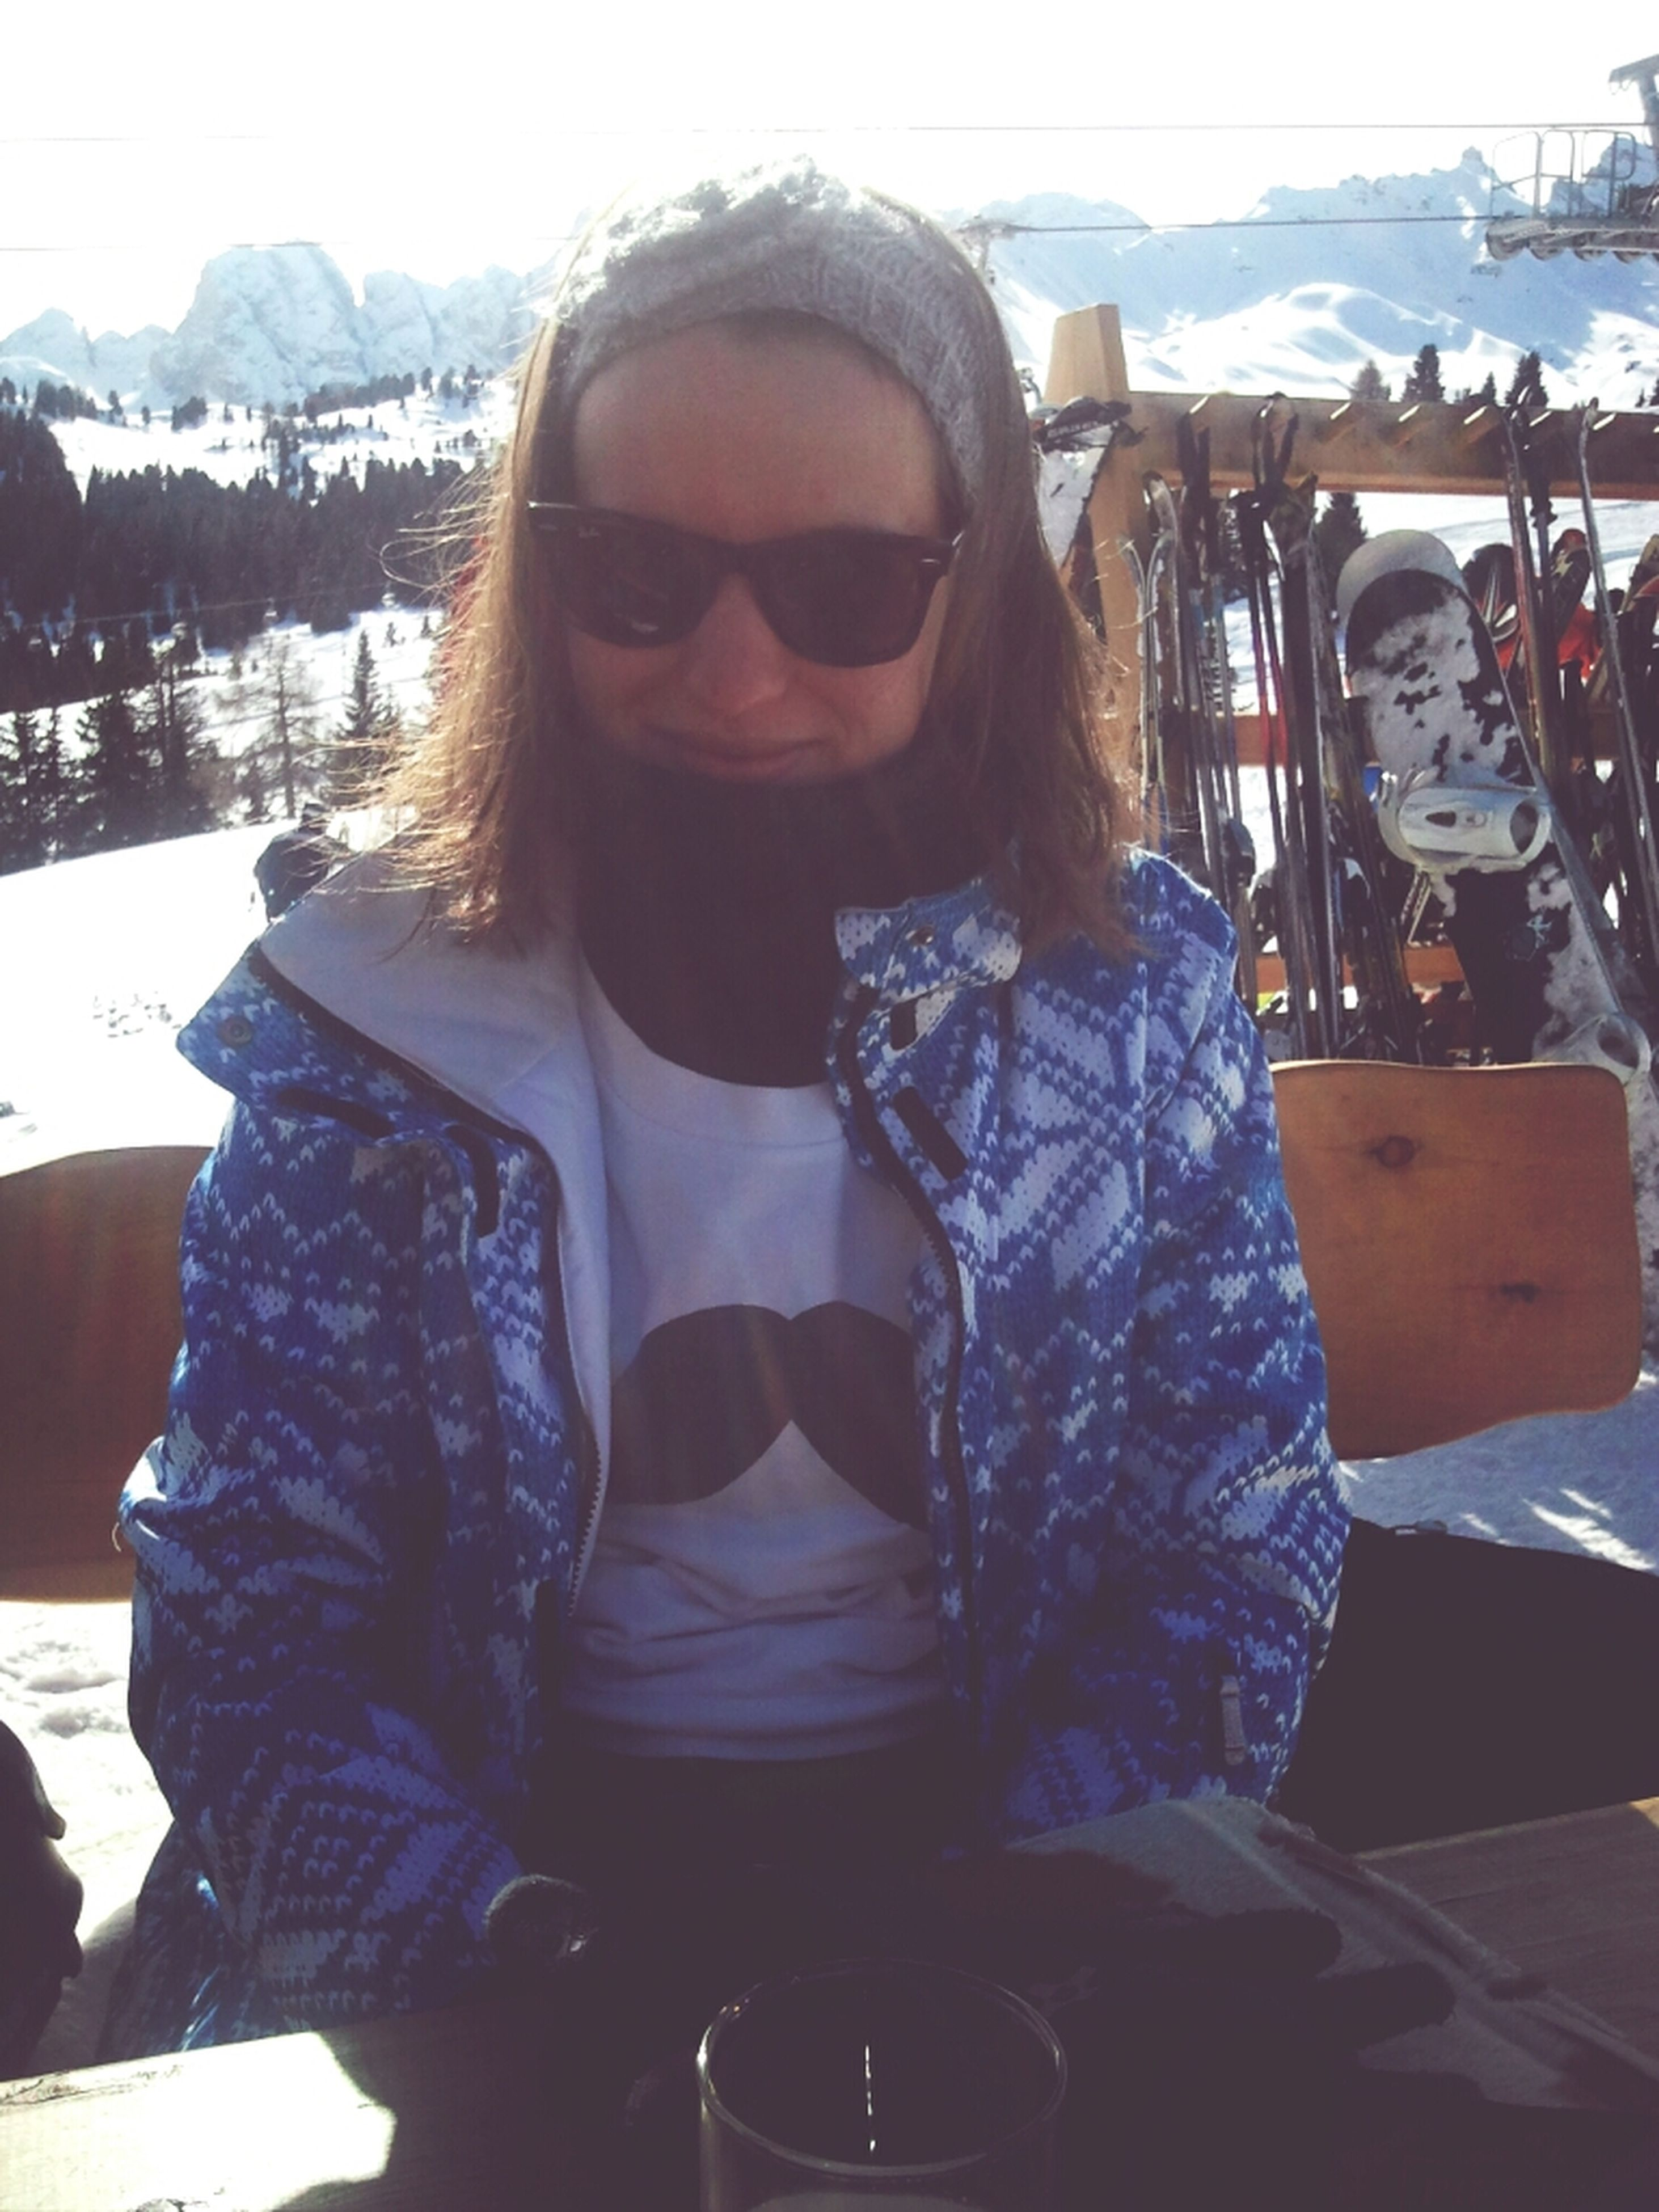 winter, cold temperature, lifestyles, snow, leisure activity, person, sunglasses, casual clothing, portrait, young adult, looking at camera, warm clothing, front view, mountain, sitting, smiling, season, waist up